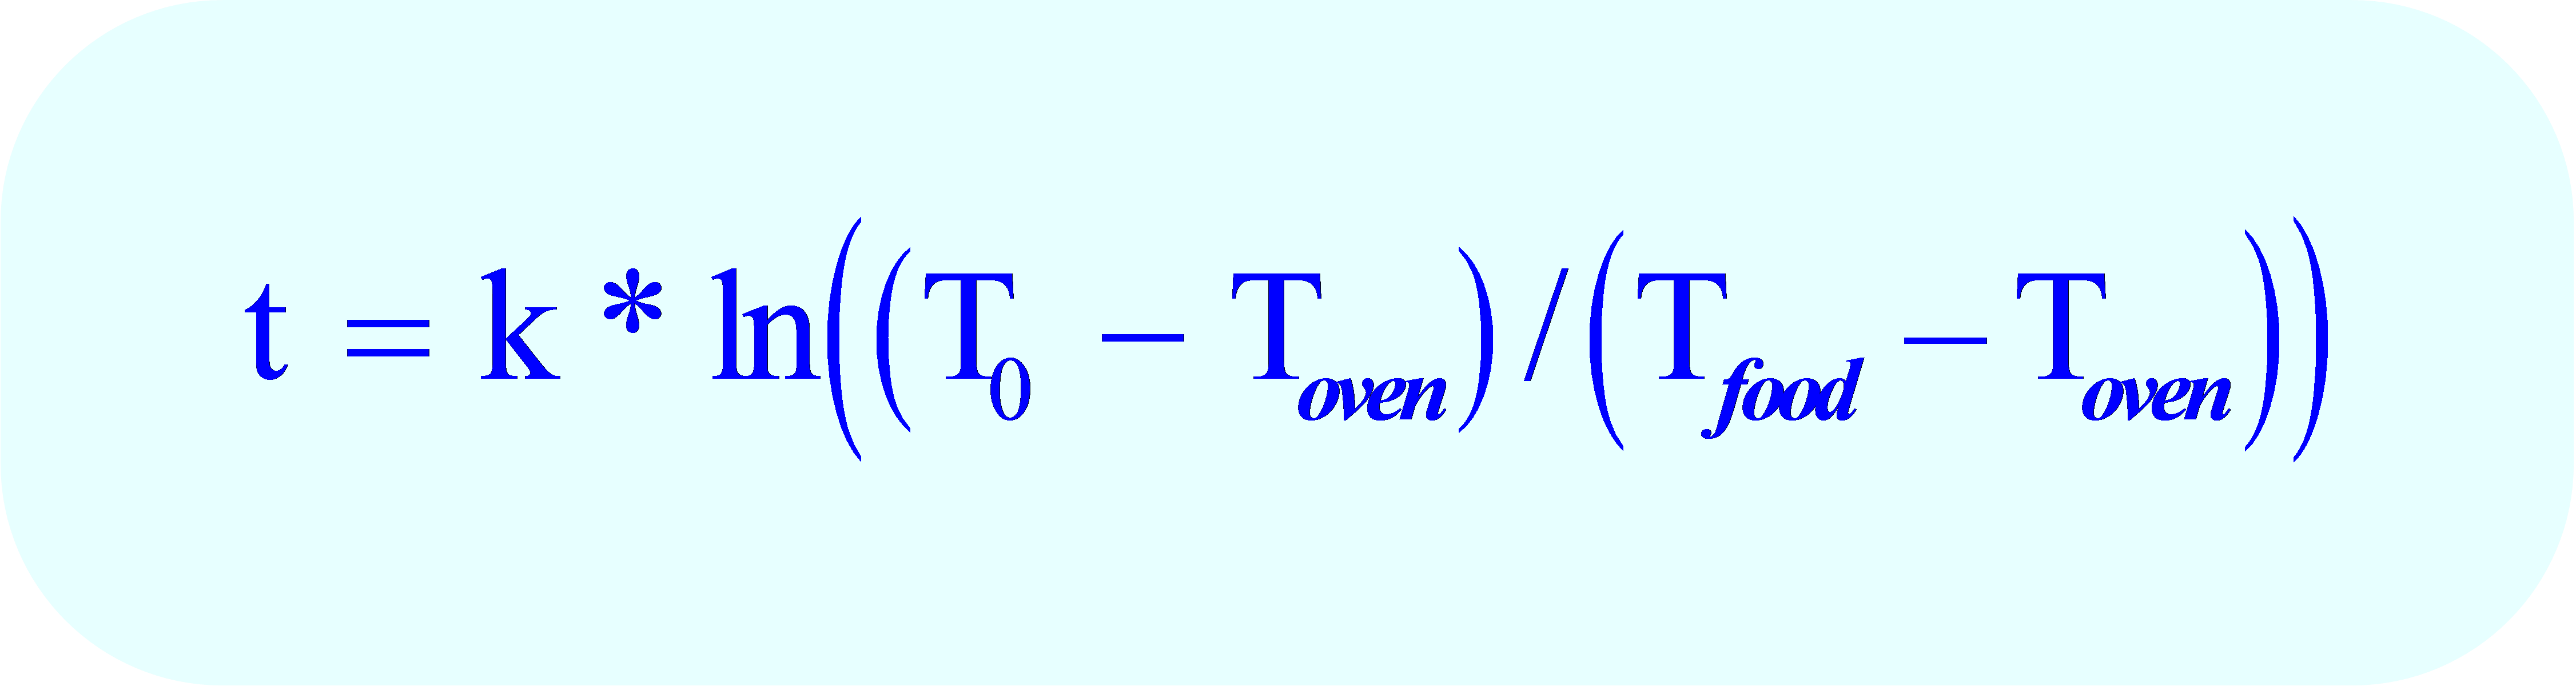 formula for Newton's Law of Heating